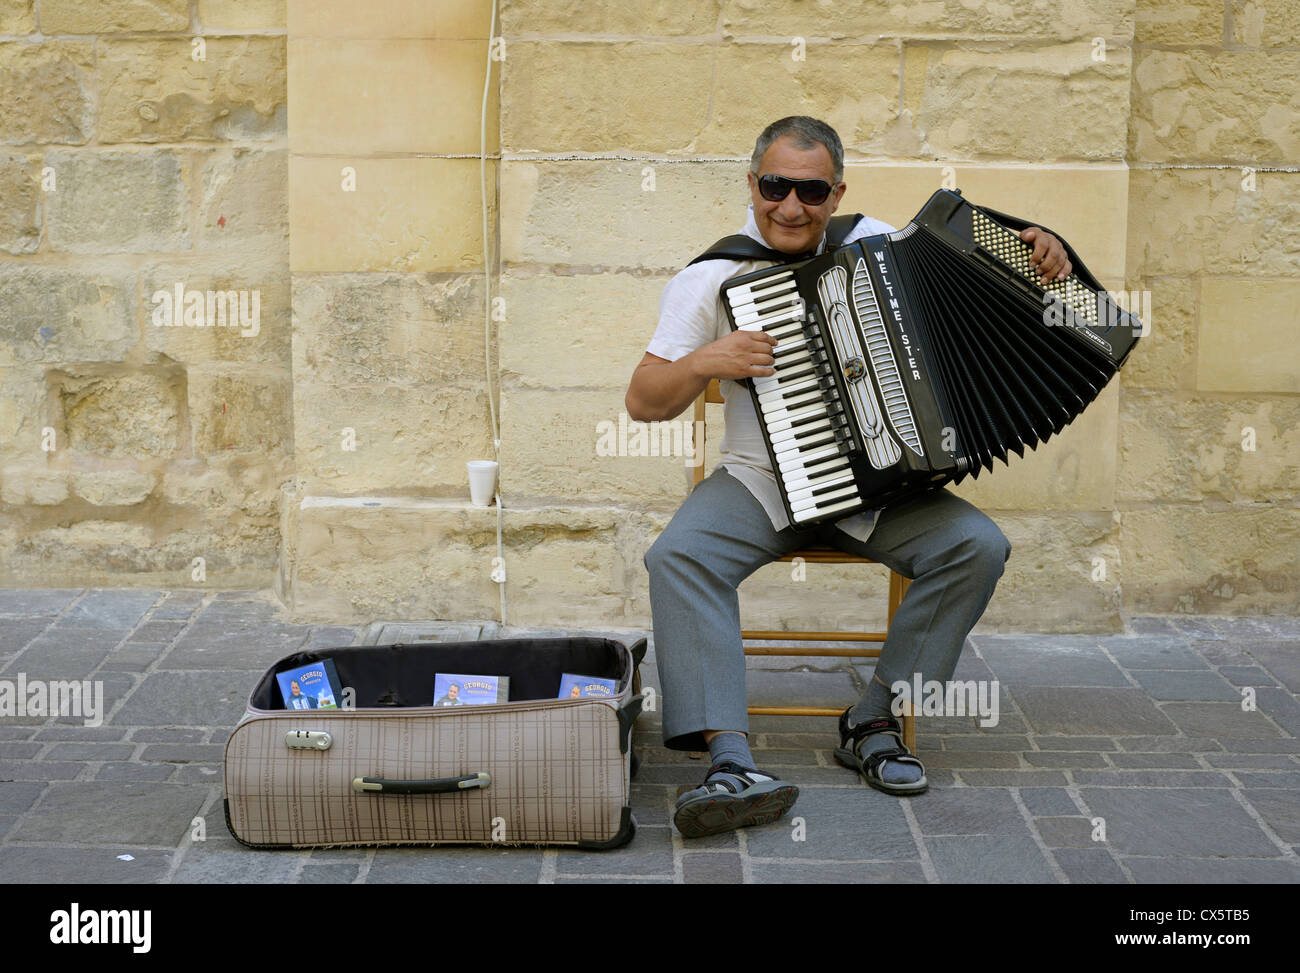 Street entertainer busker in Valetta, Malta playing the accordion. - Stock Image